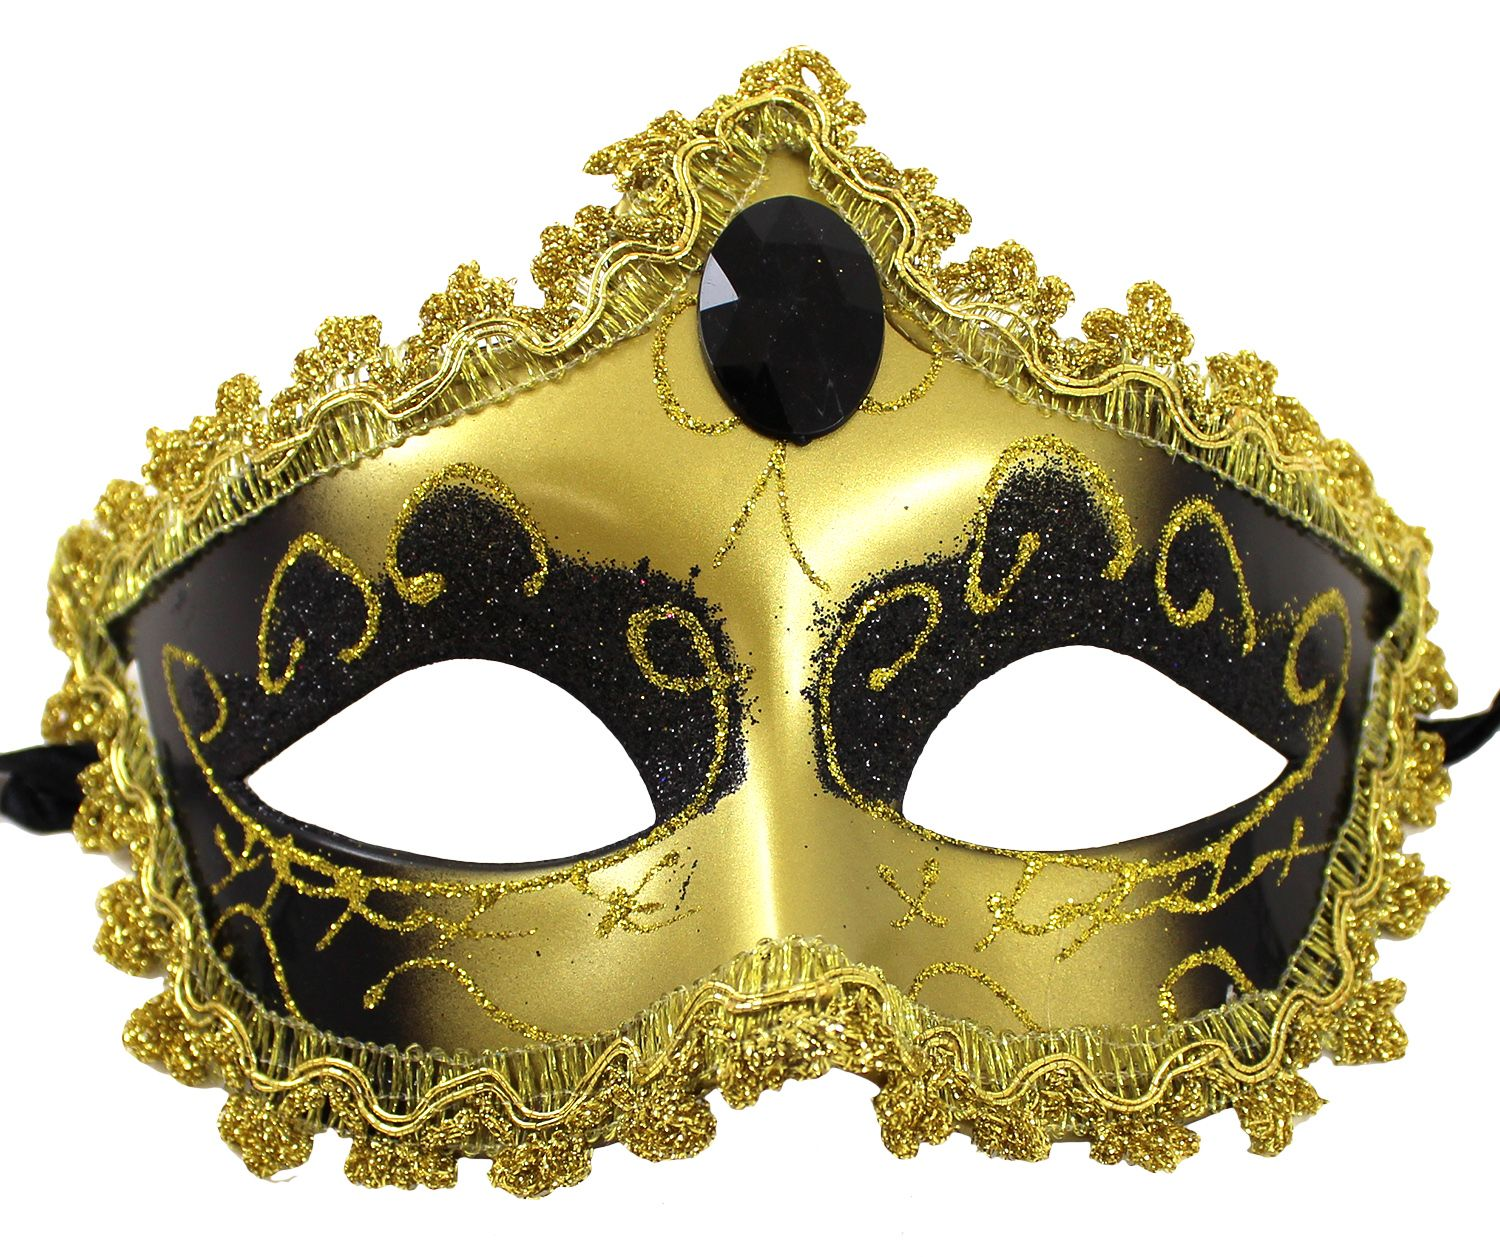 party city women's venetian masquerade costumes pictures | Details ...